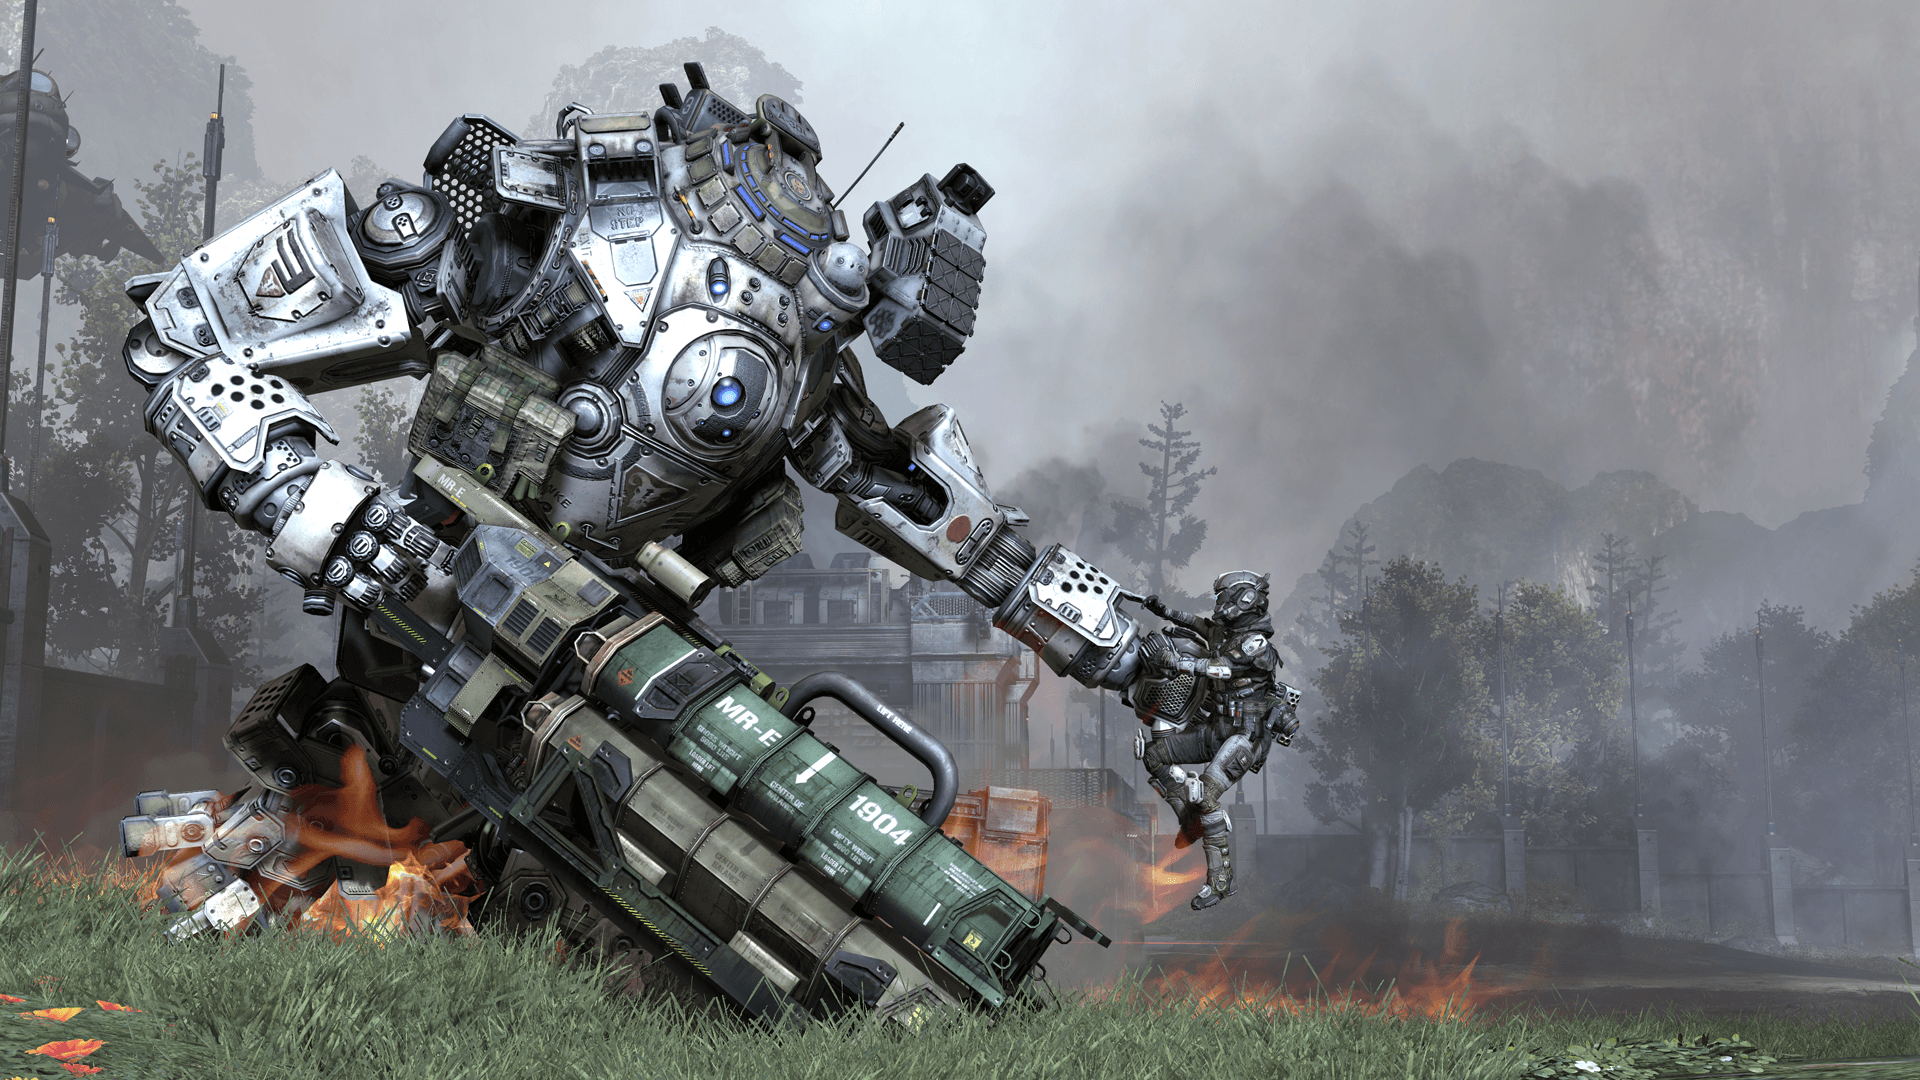 Titanfall on Xbox 360: Playable, But Not Optimal